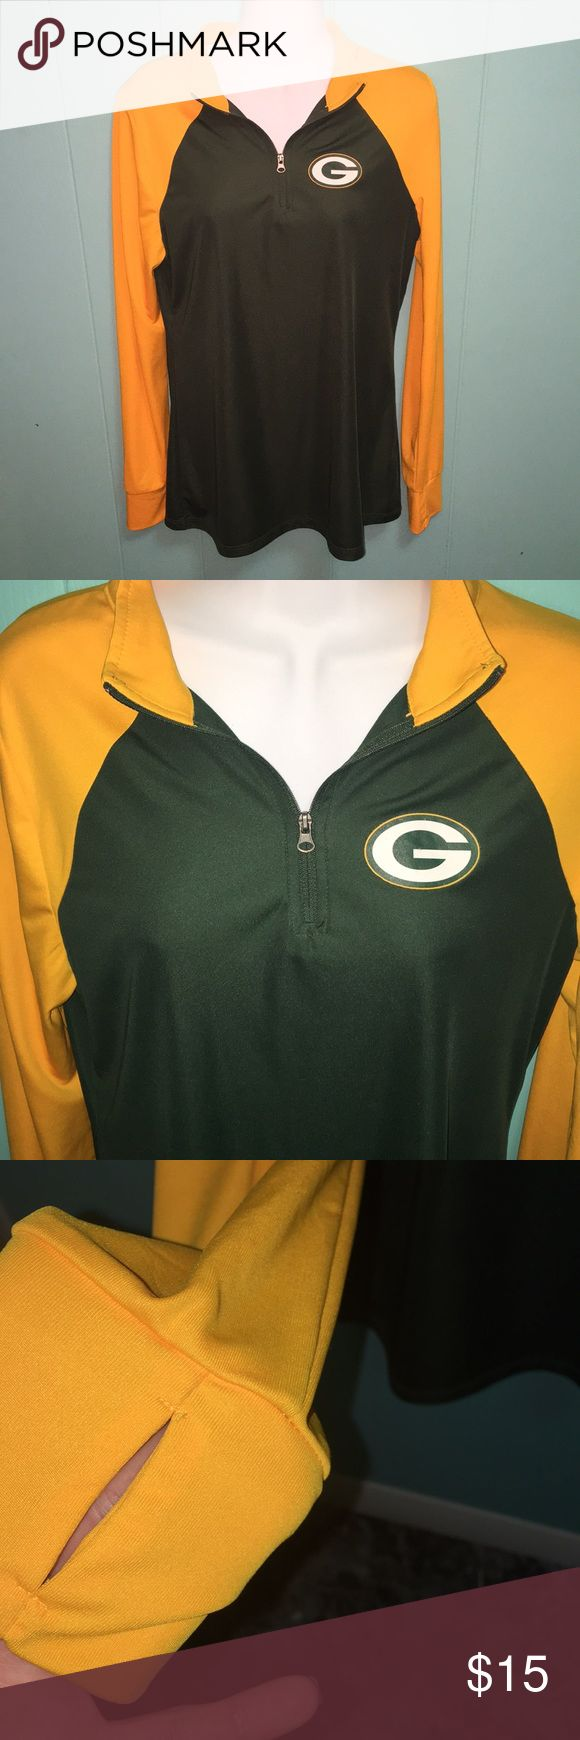 Green Bay packers NFL athletic fit half zip Women's Green Bay packers half zip athletic top. Thumb holes on cuffs. Size large women's Tops Tees - Long Sleeve